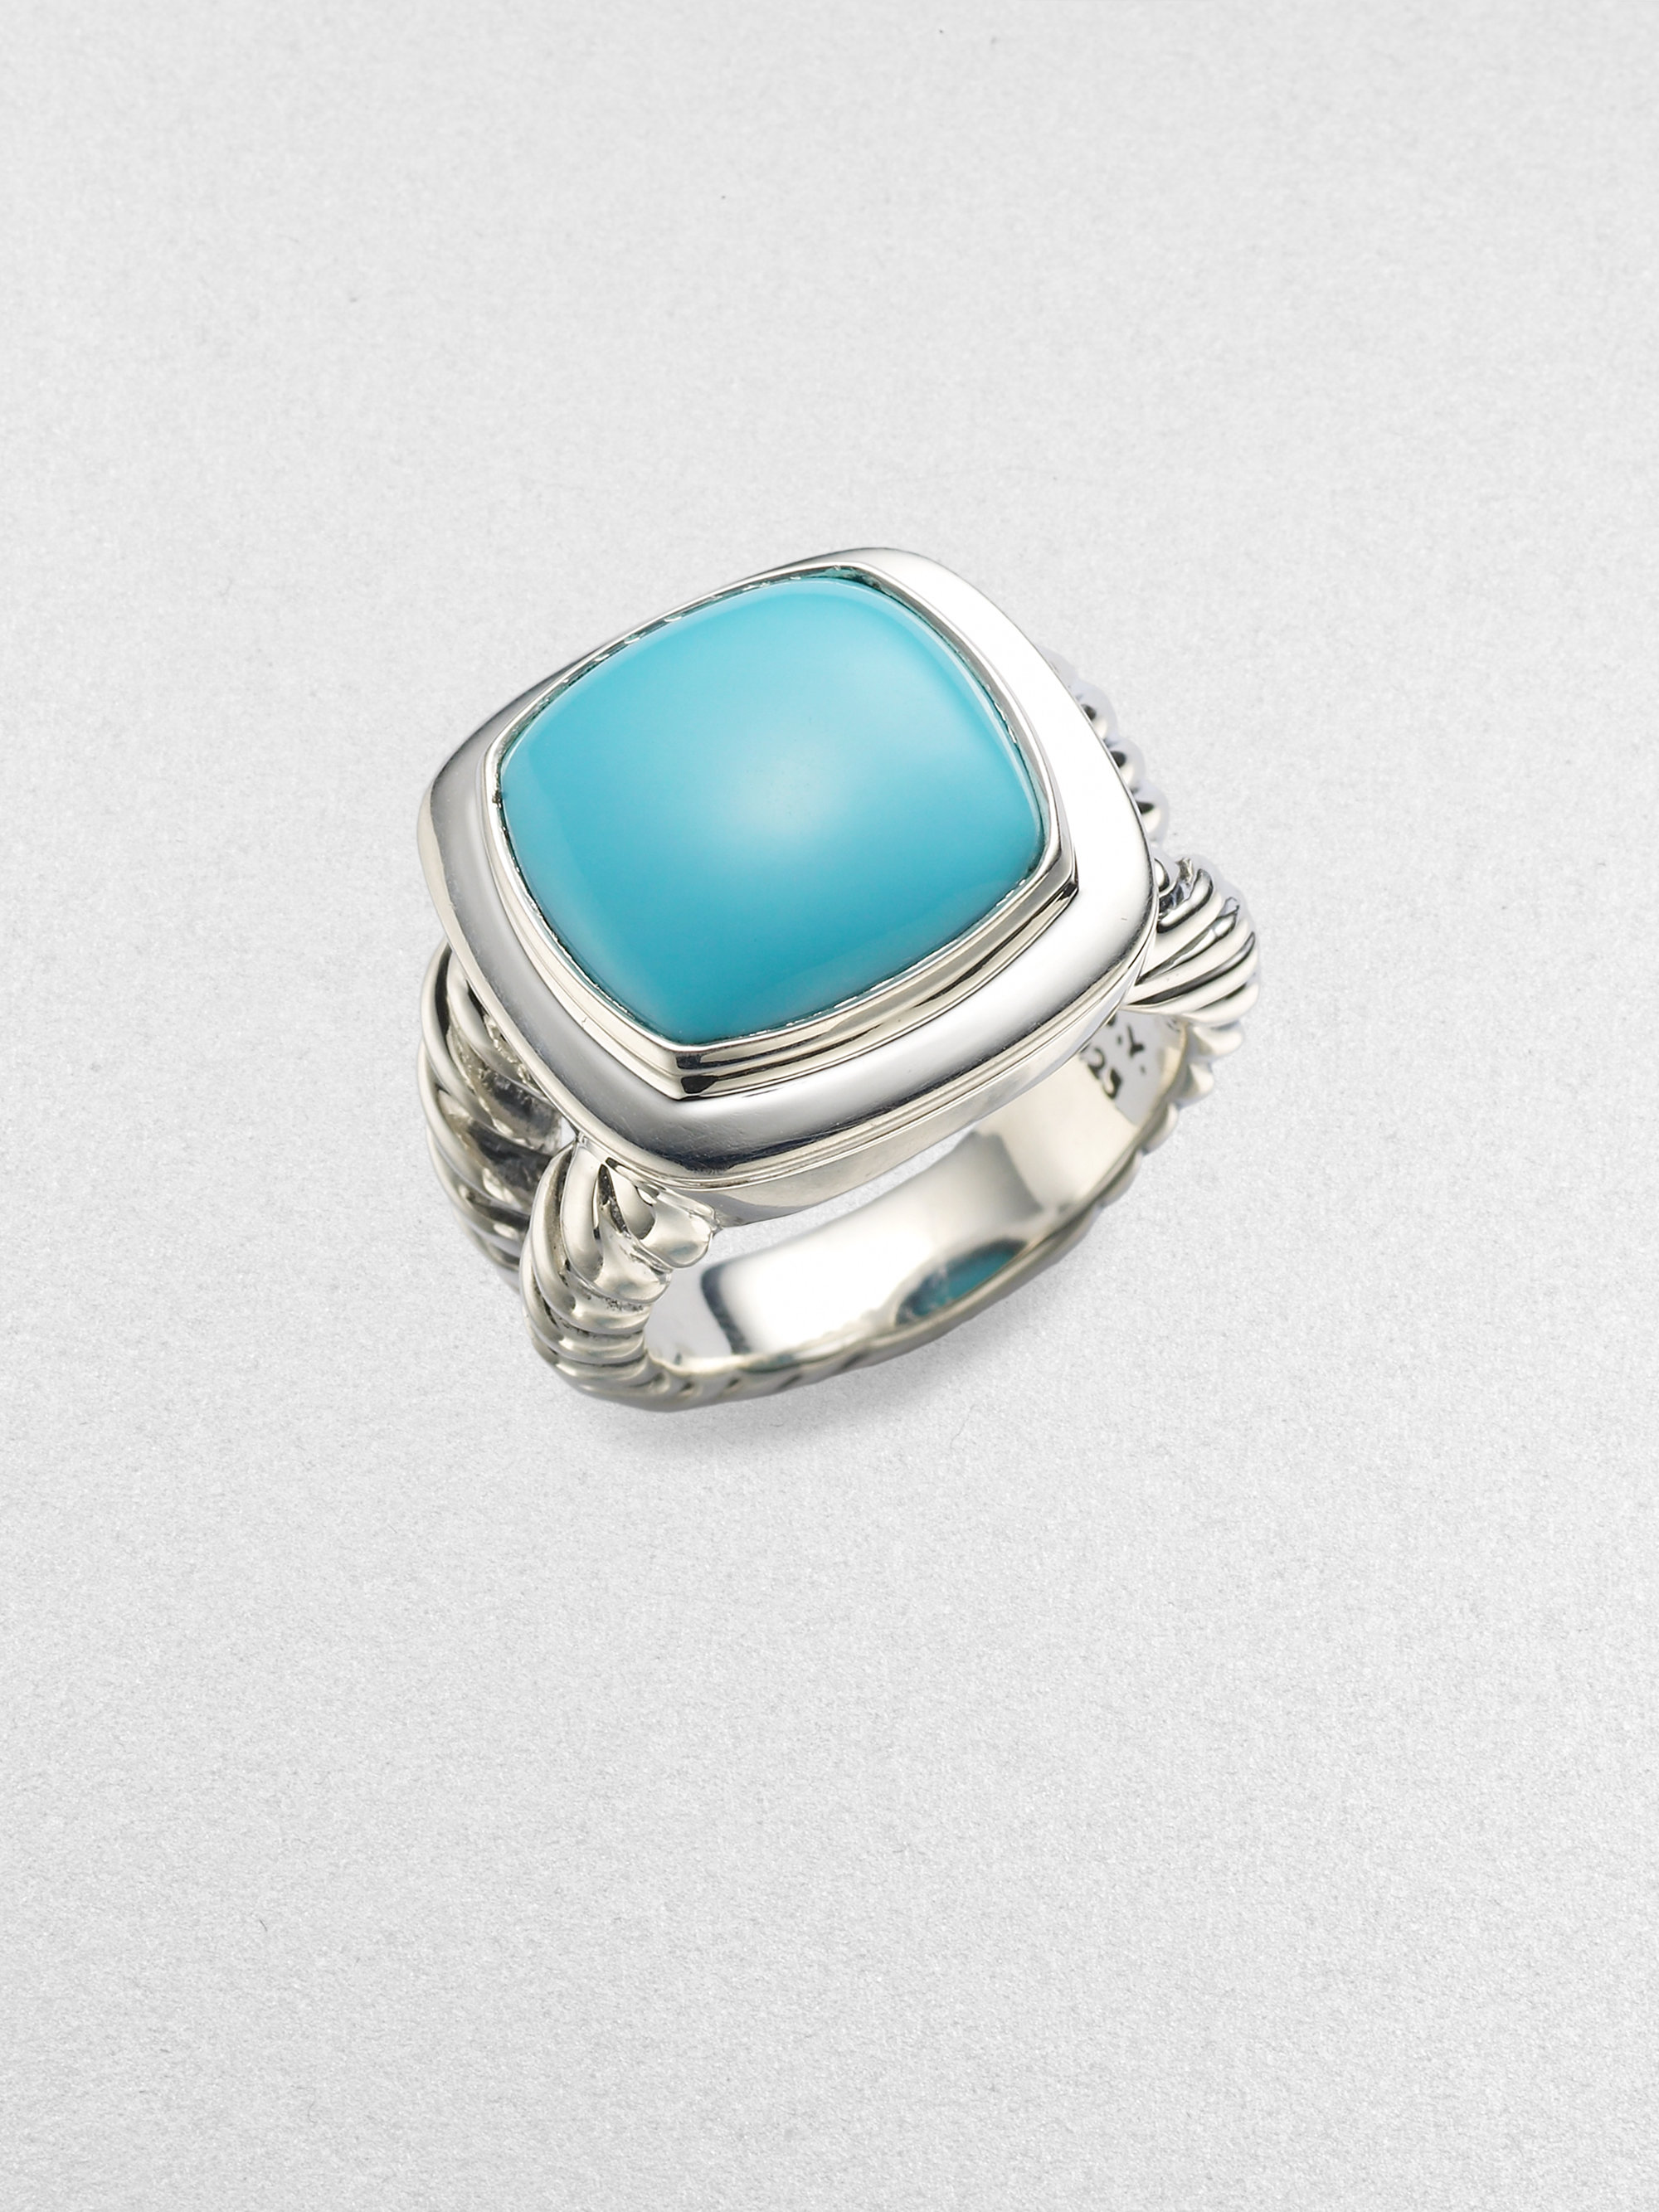 David Yurman Turquoise Sterling Silver Ring In Blue